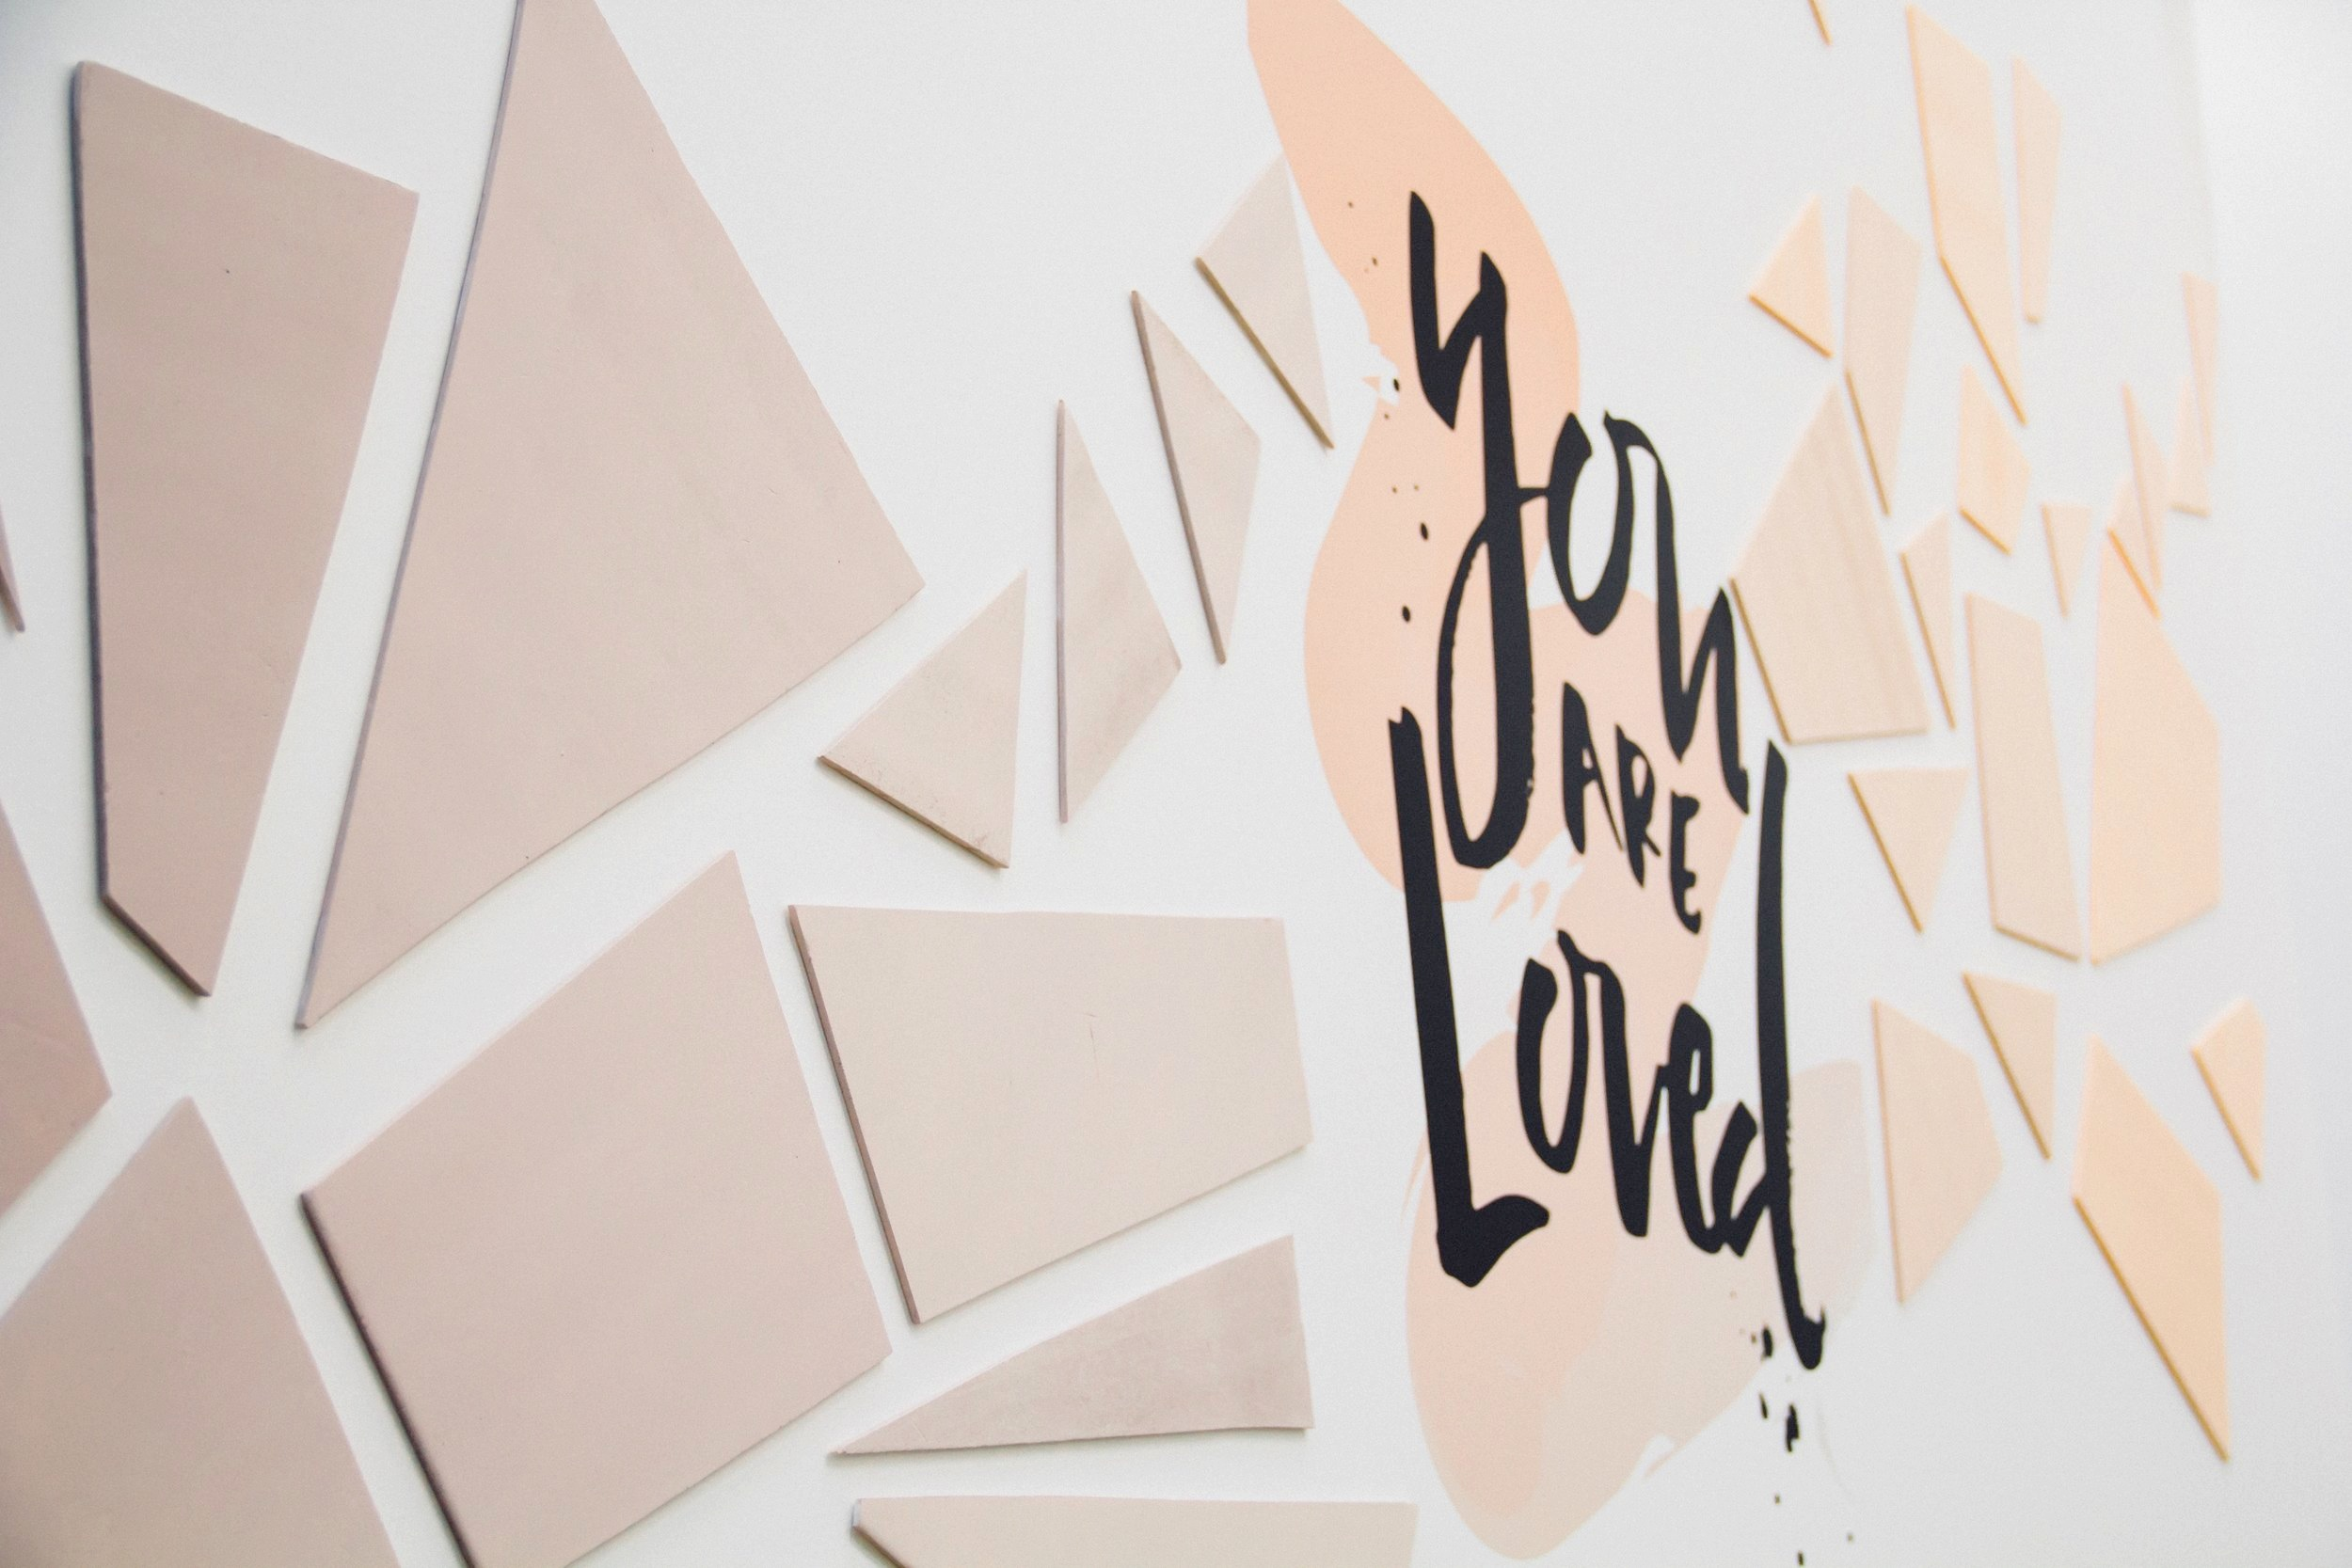 You Are Loved | Relevant + Raw Installation | @RelevantRaw